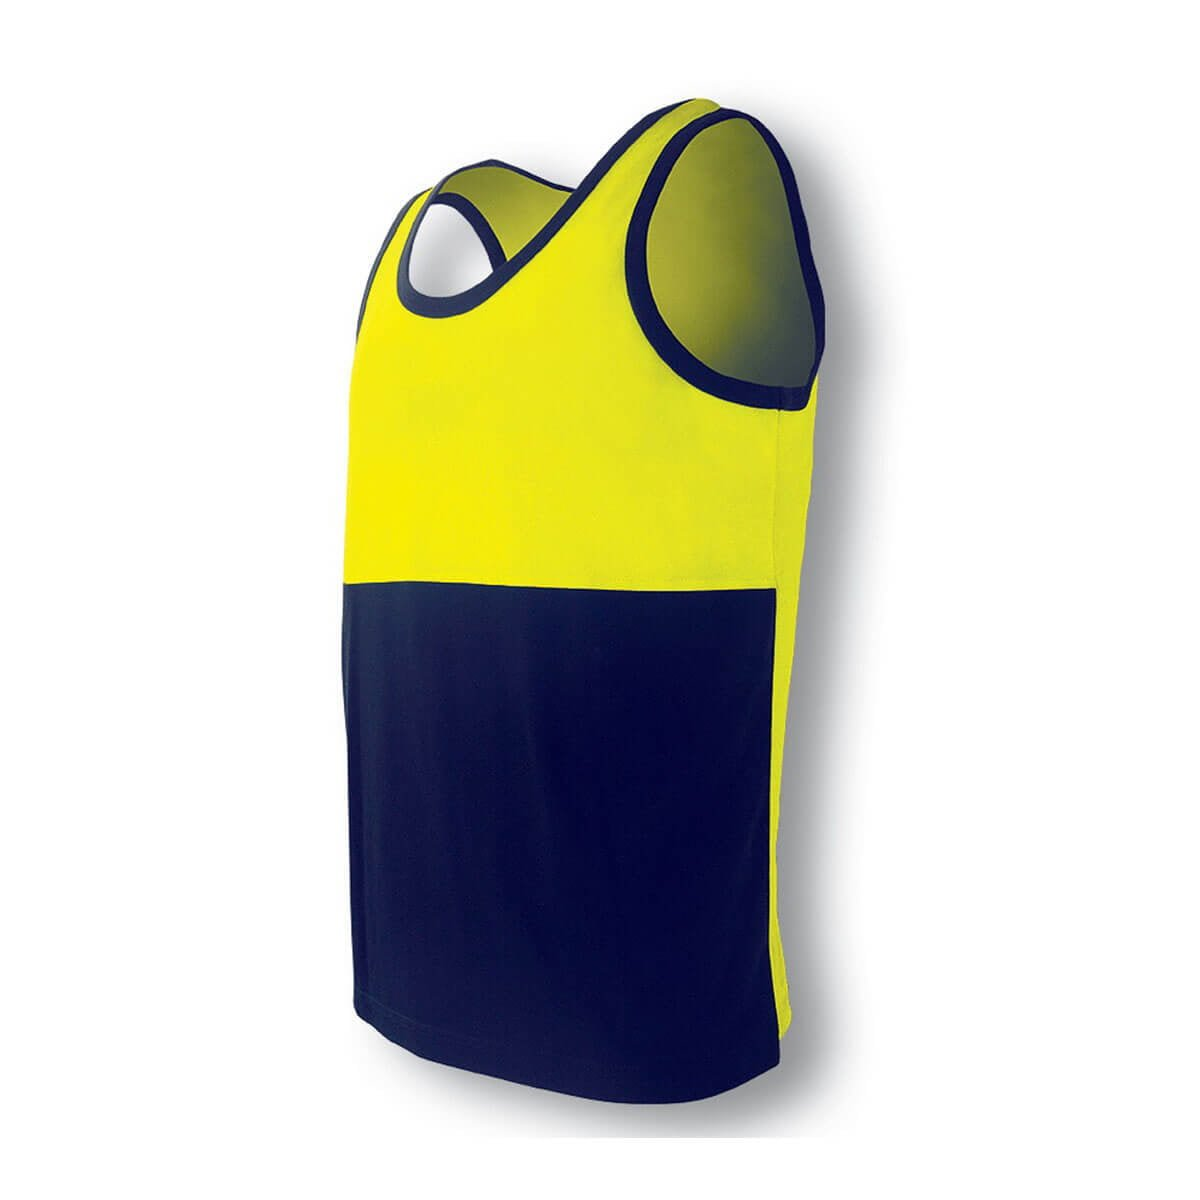 HI-VIS POLYFACE/COTTON BACK SINGLET-Lime / Navy